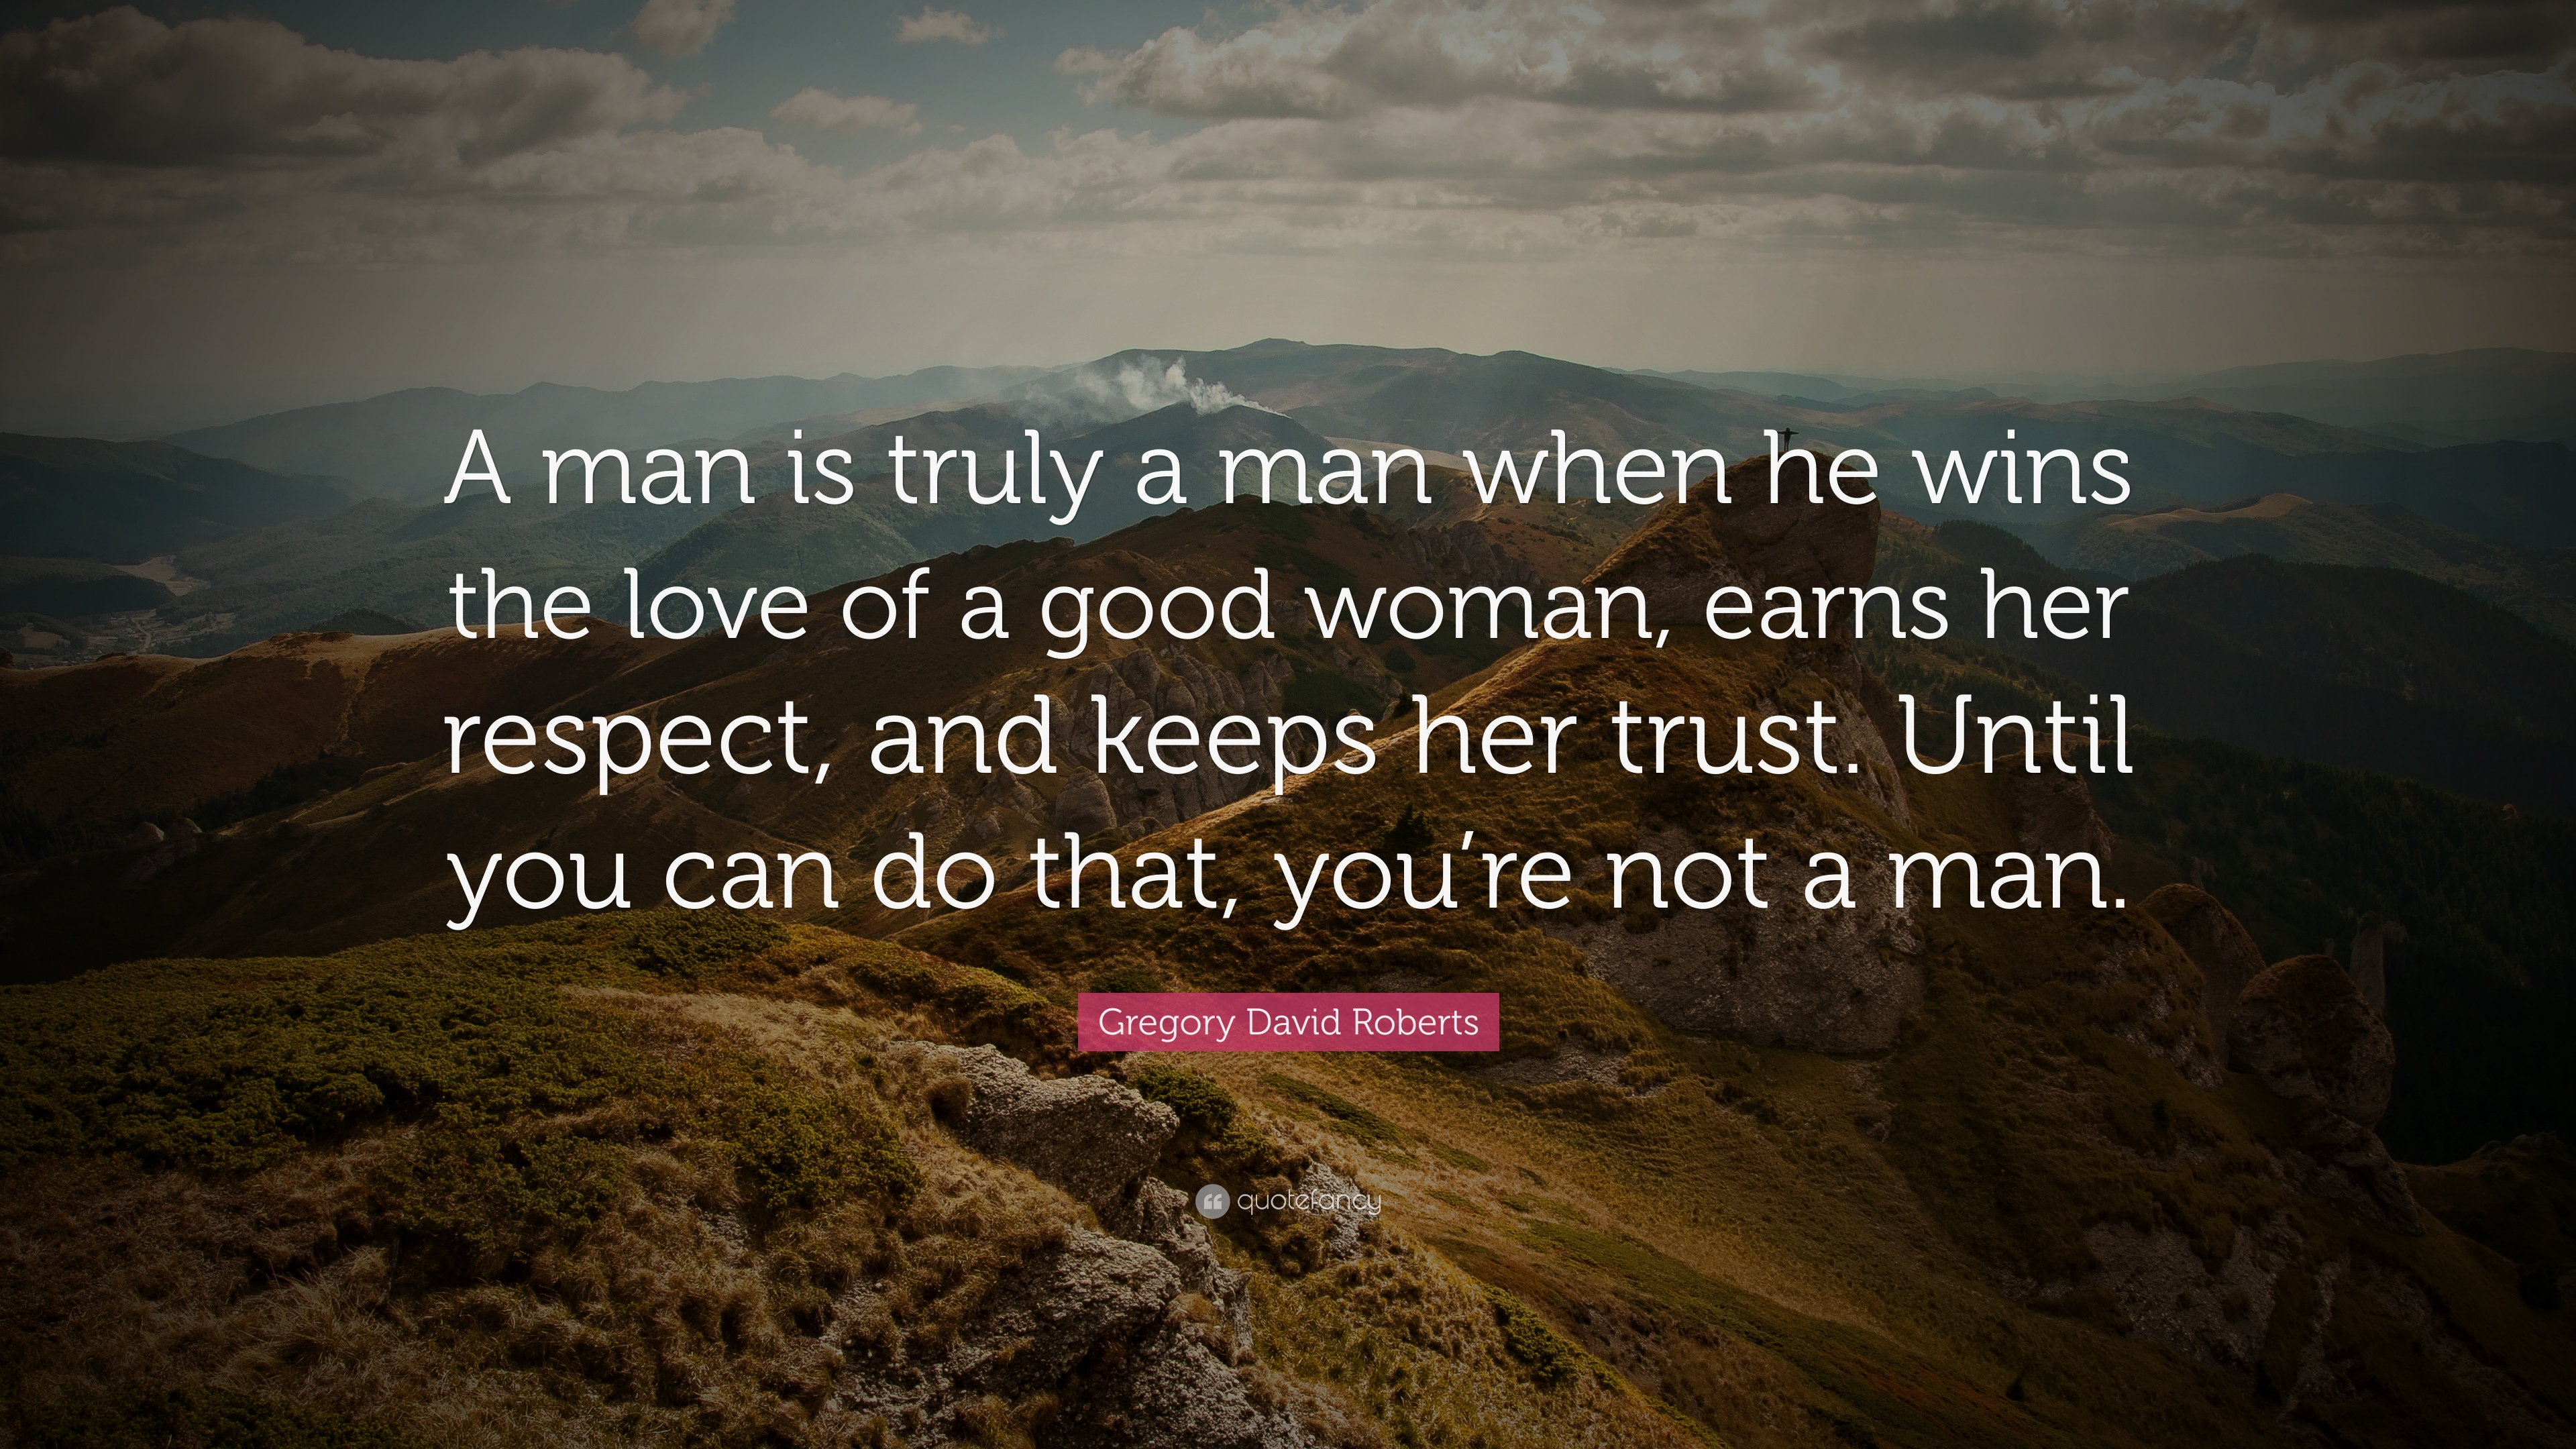 Gregory David Roberts Quote A Man Is Truly A Man When He Wins The